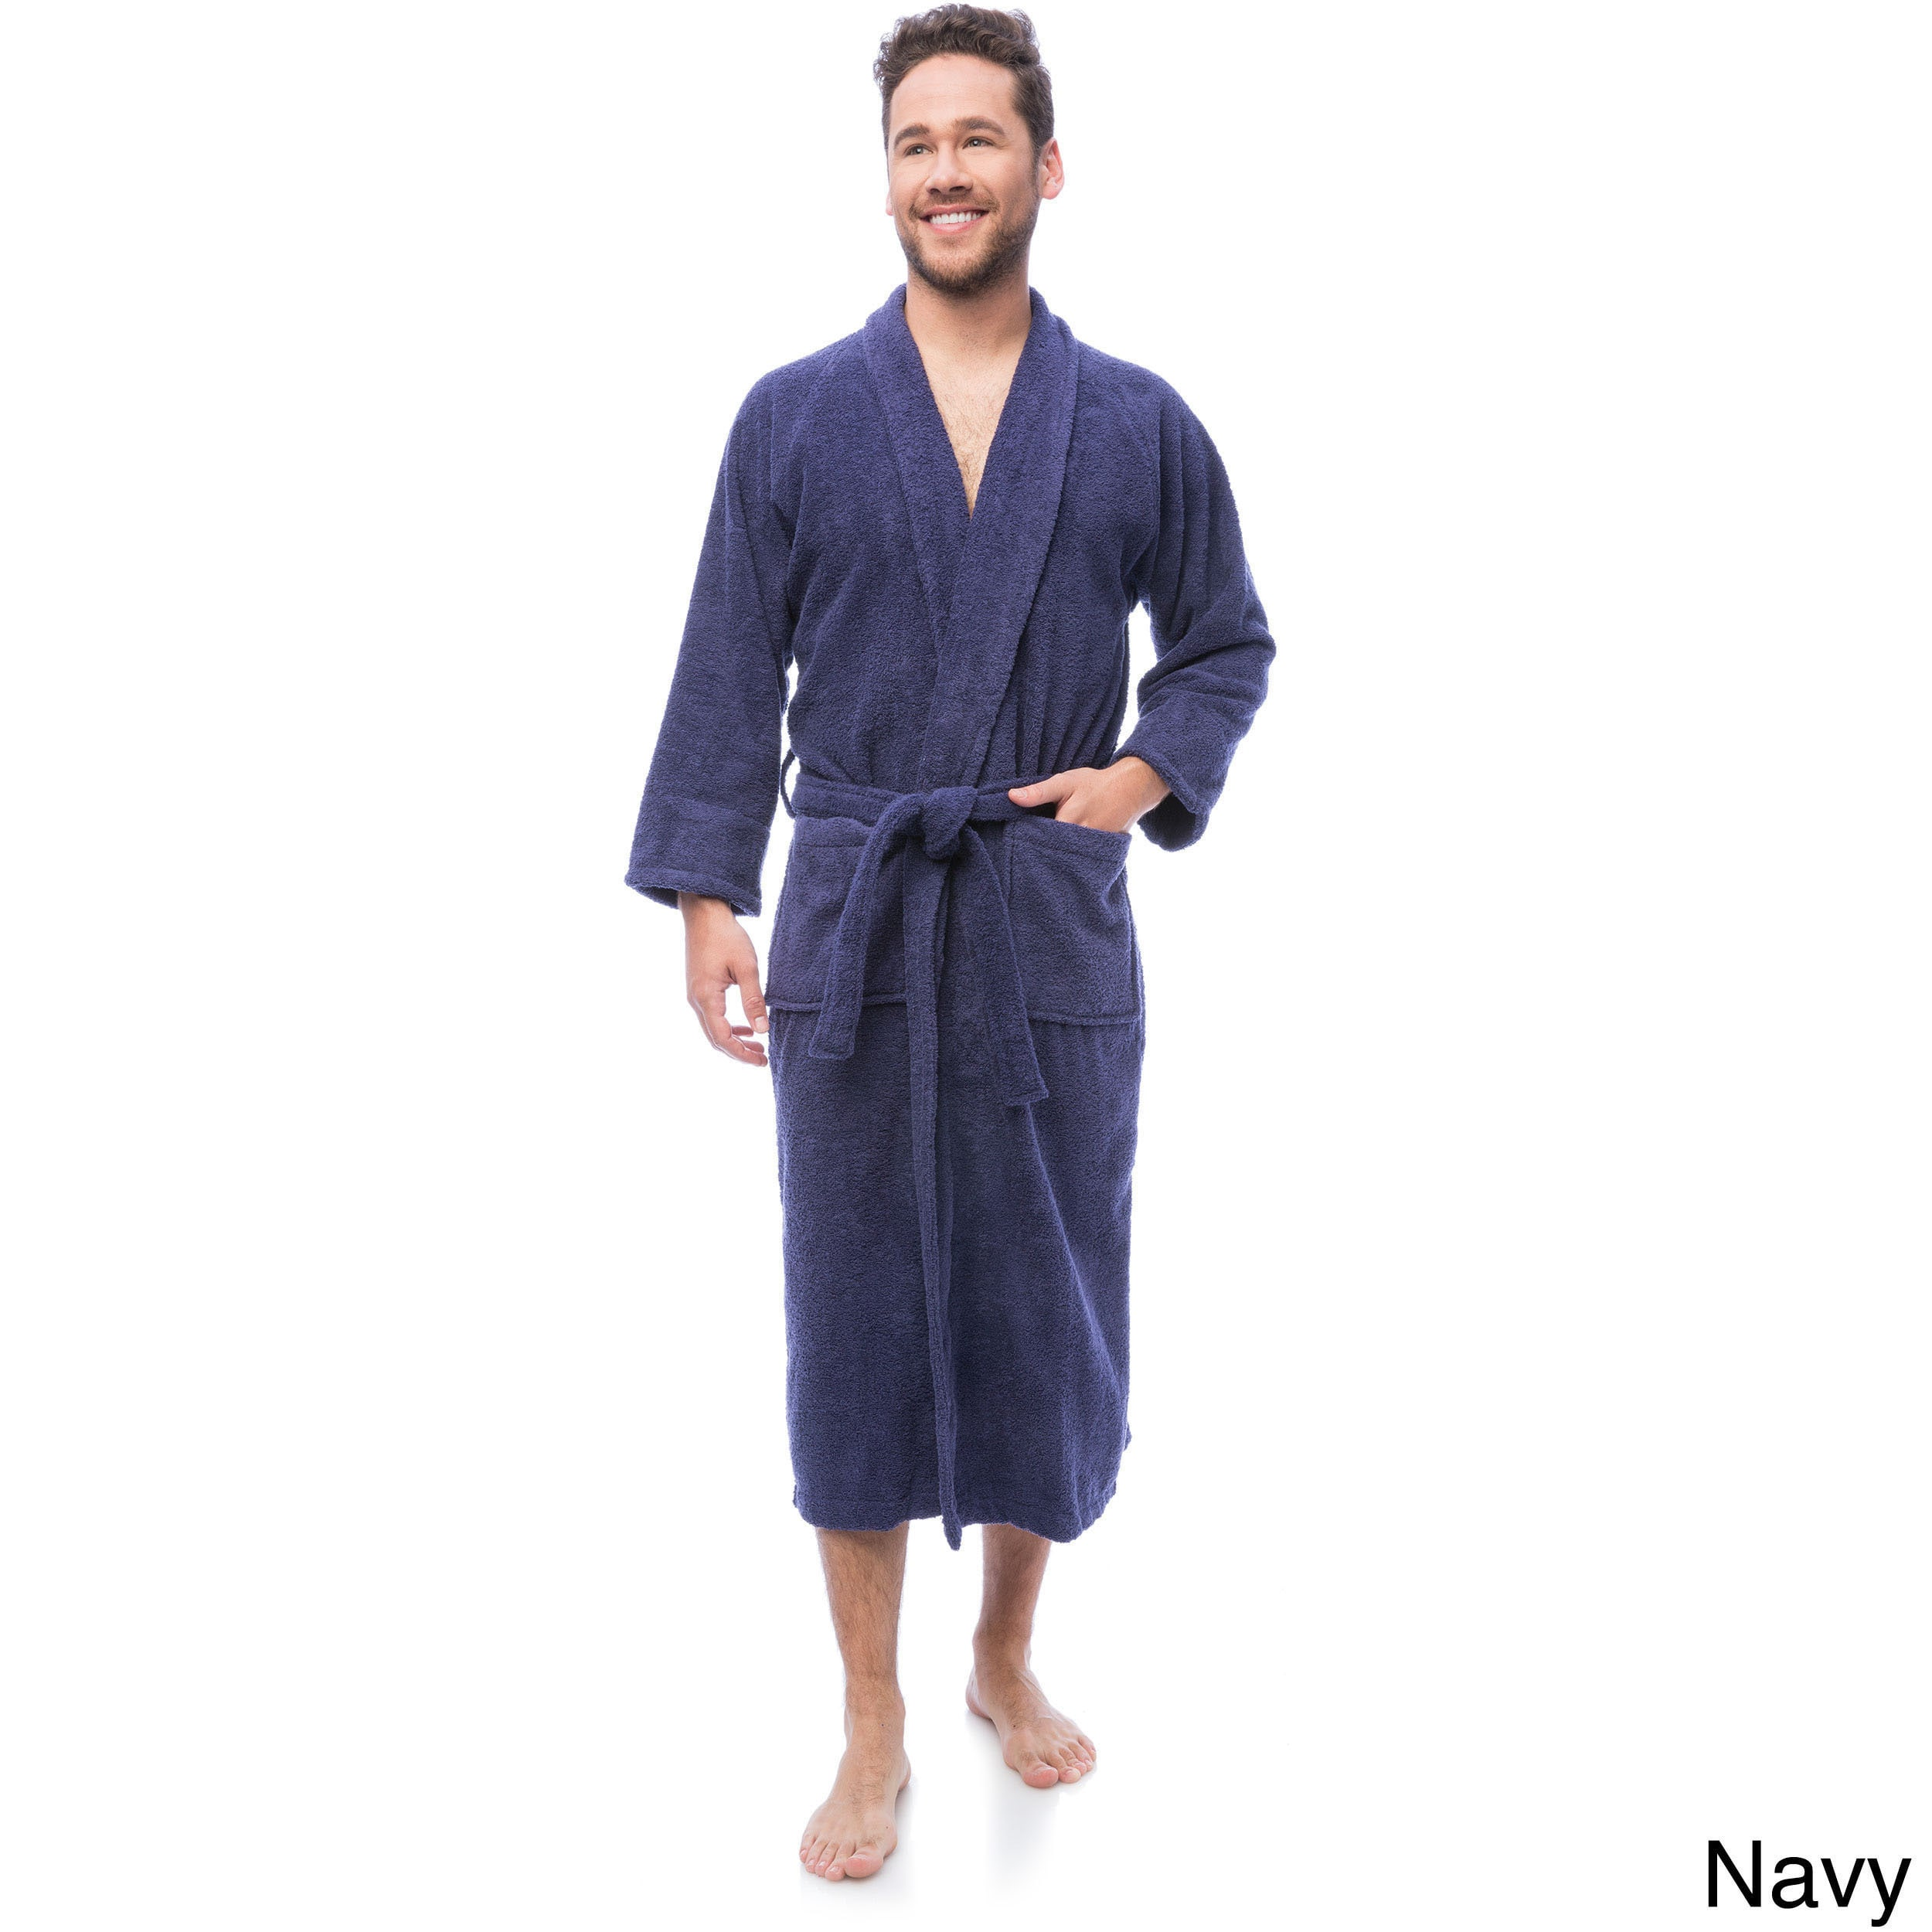 6438f7db4c Shop Superior Luxurious 100-percent Combed Cotton Unisex Terry Bath Robe -  Free Shipping On Orders Over  45 - Overstock - 6632152